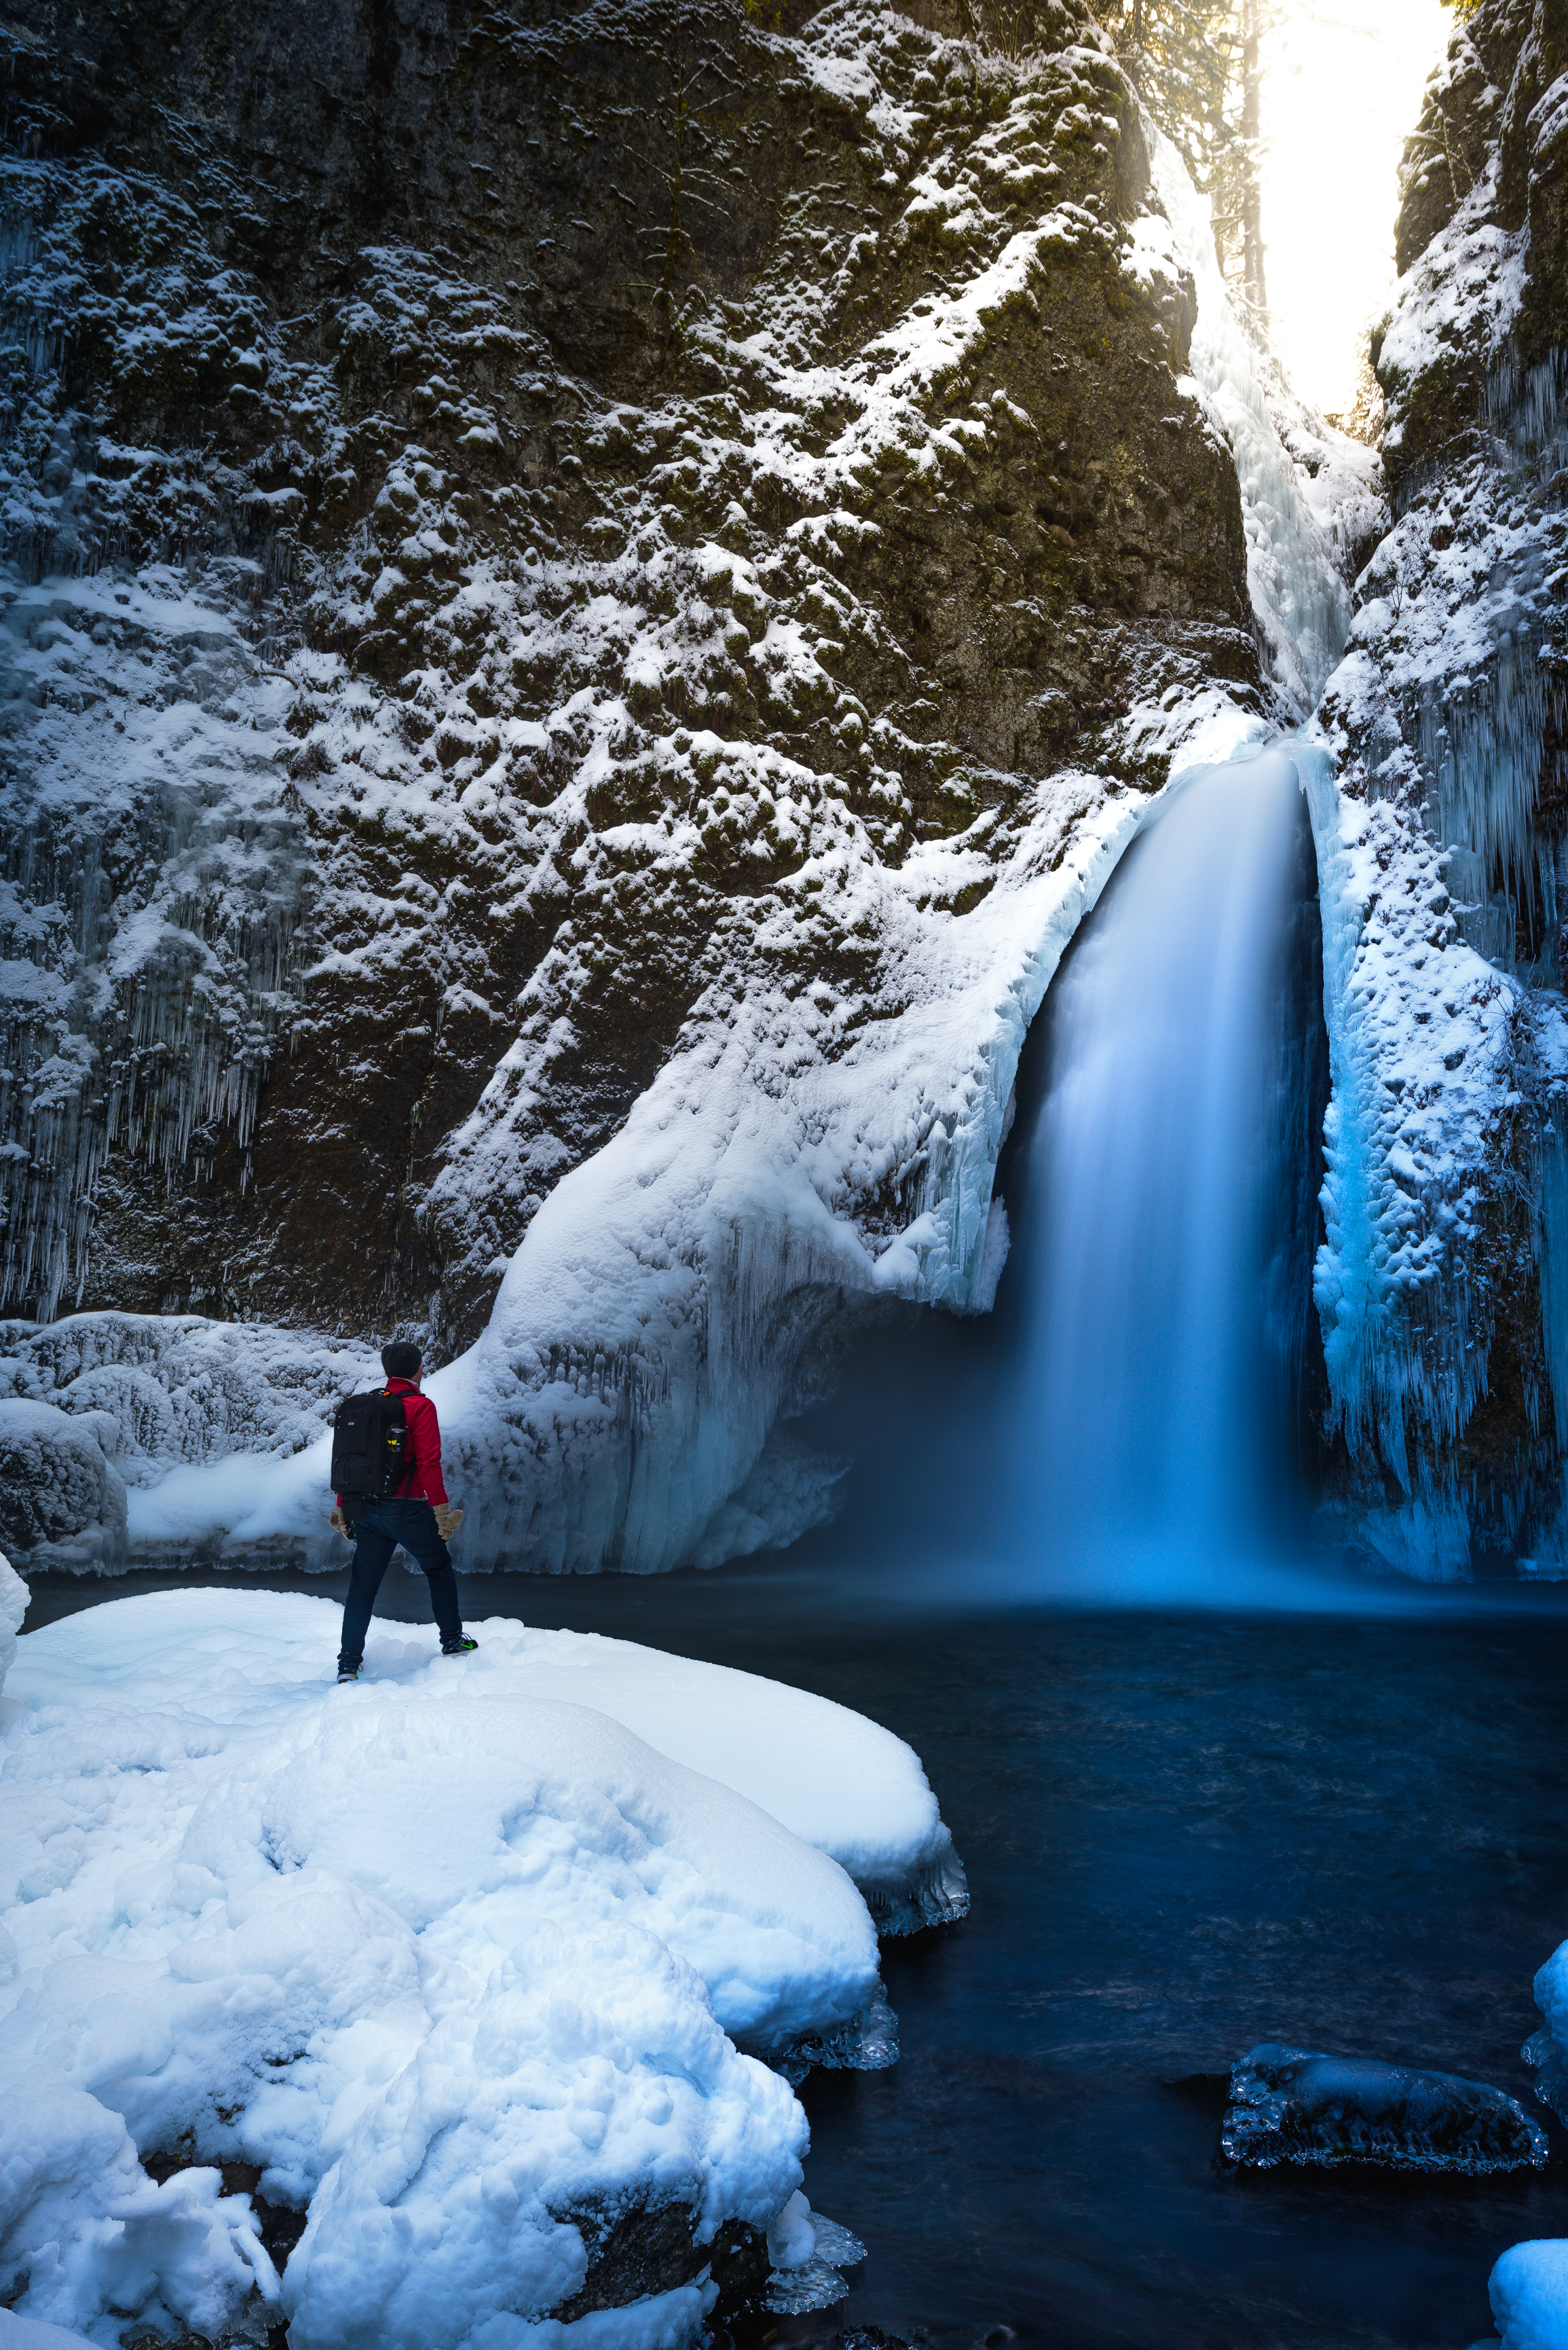 columbia river gorge winter snow waterfall person oregon